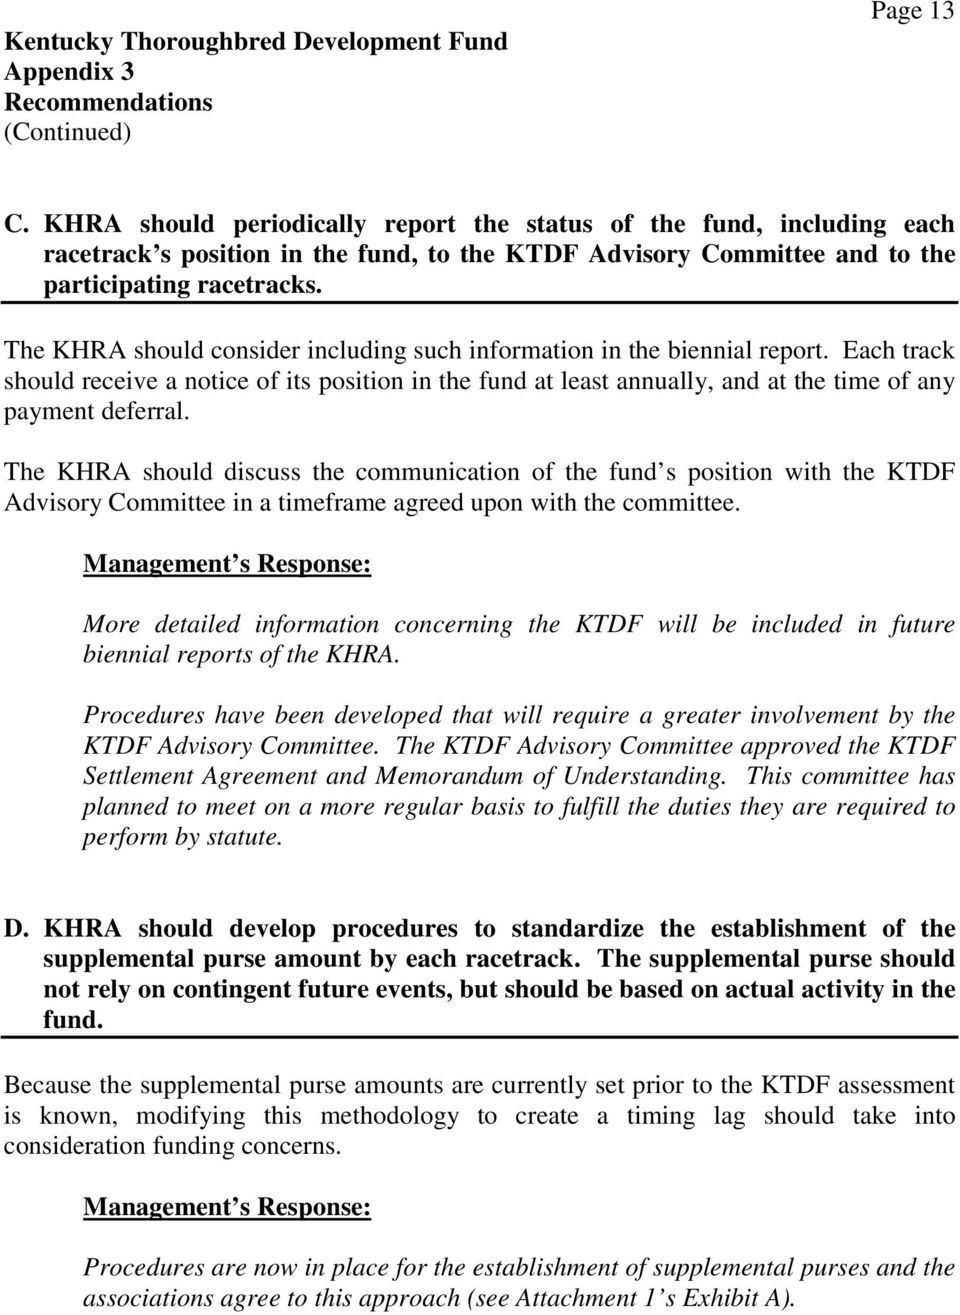 The KHRA should consider including such information in the biennial report. Each track should receive a notice of its position in the fund at least annually, and at the time of any payment deferral.